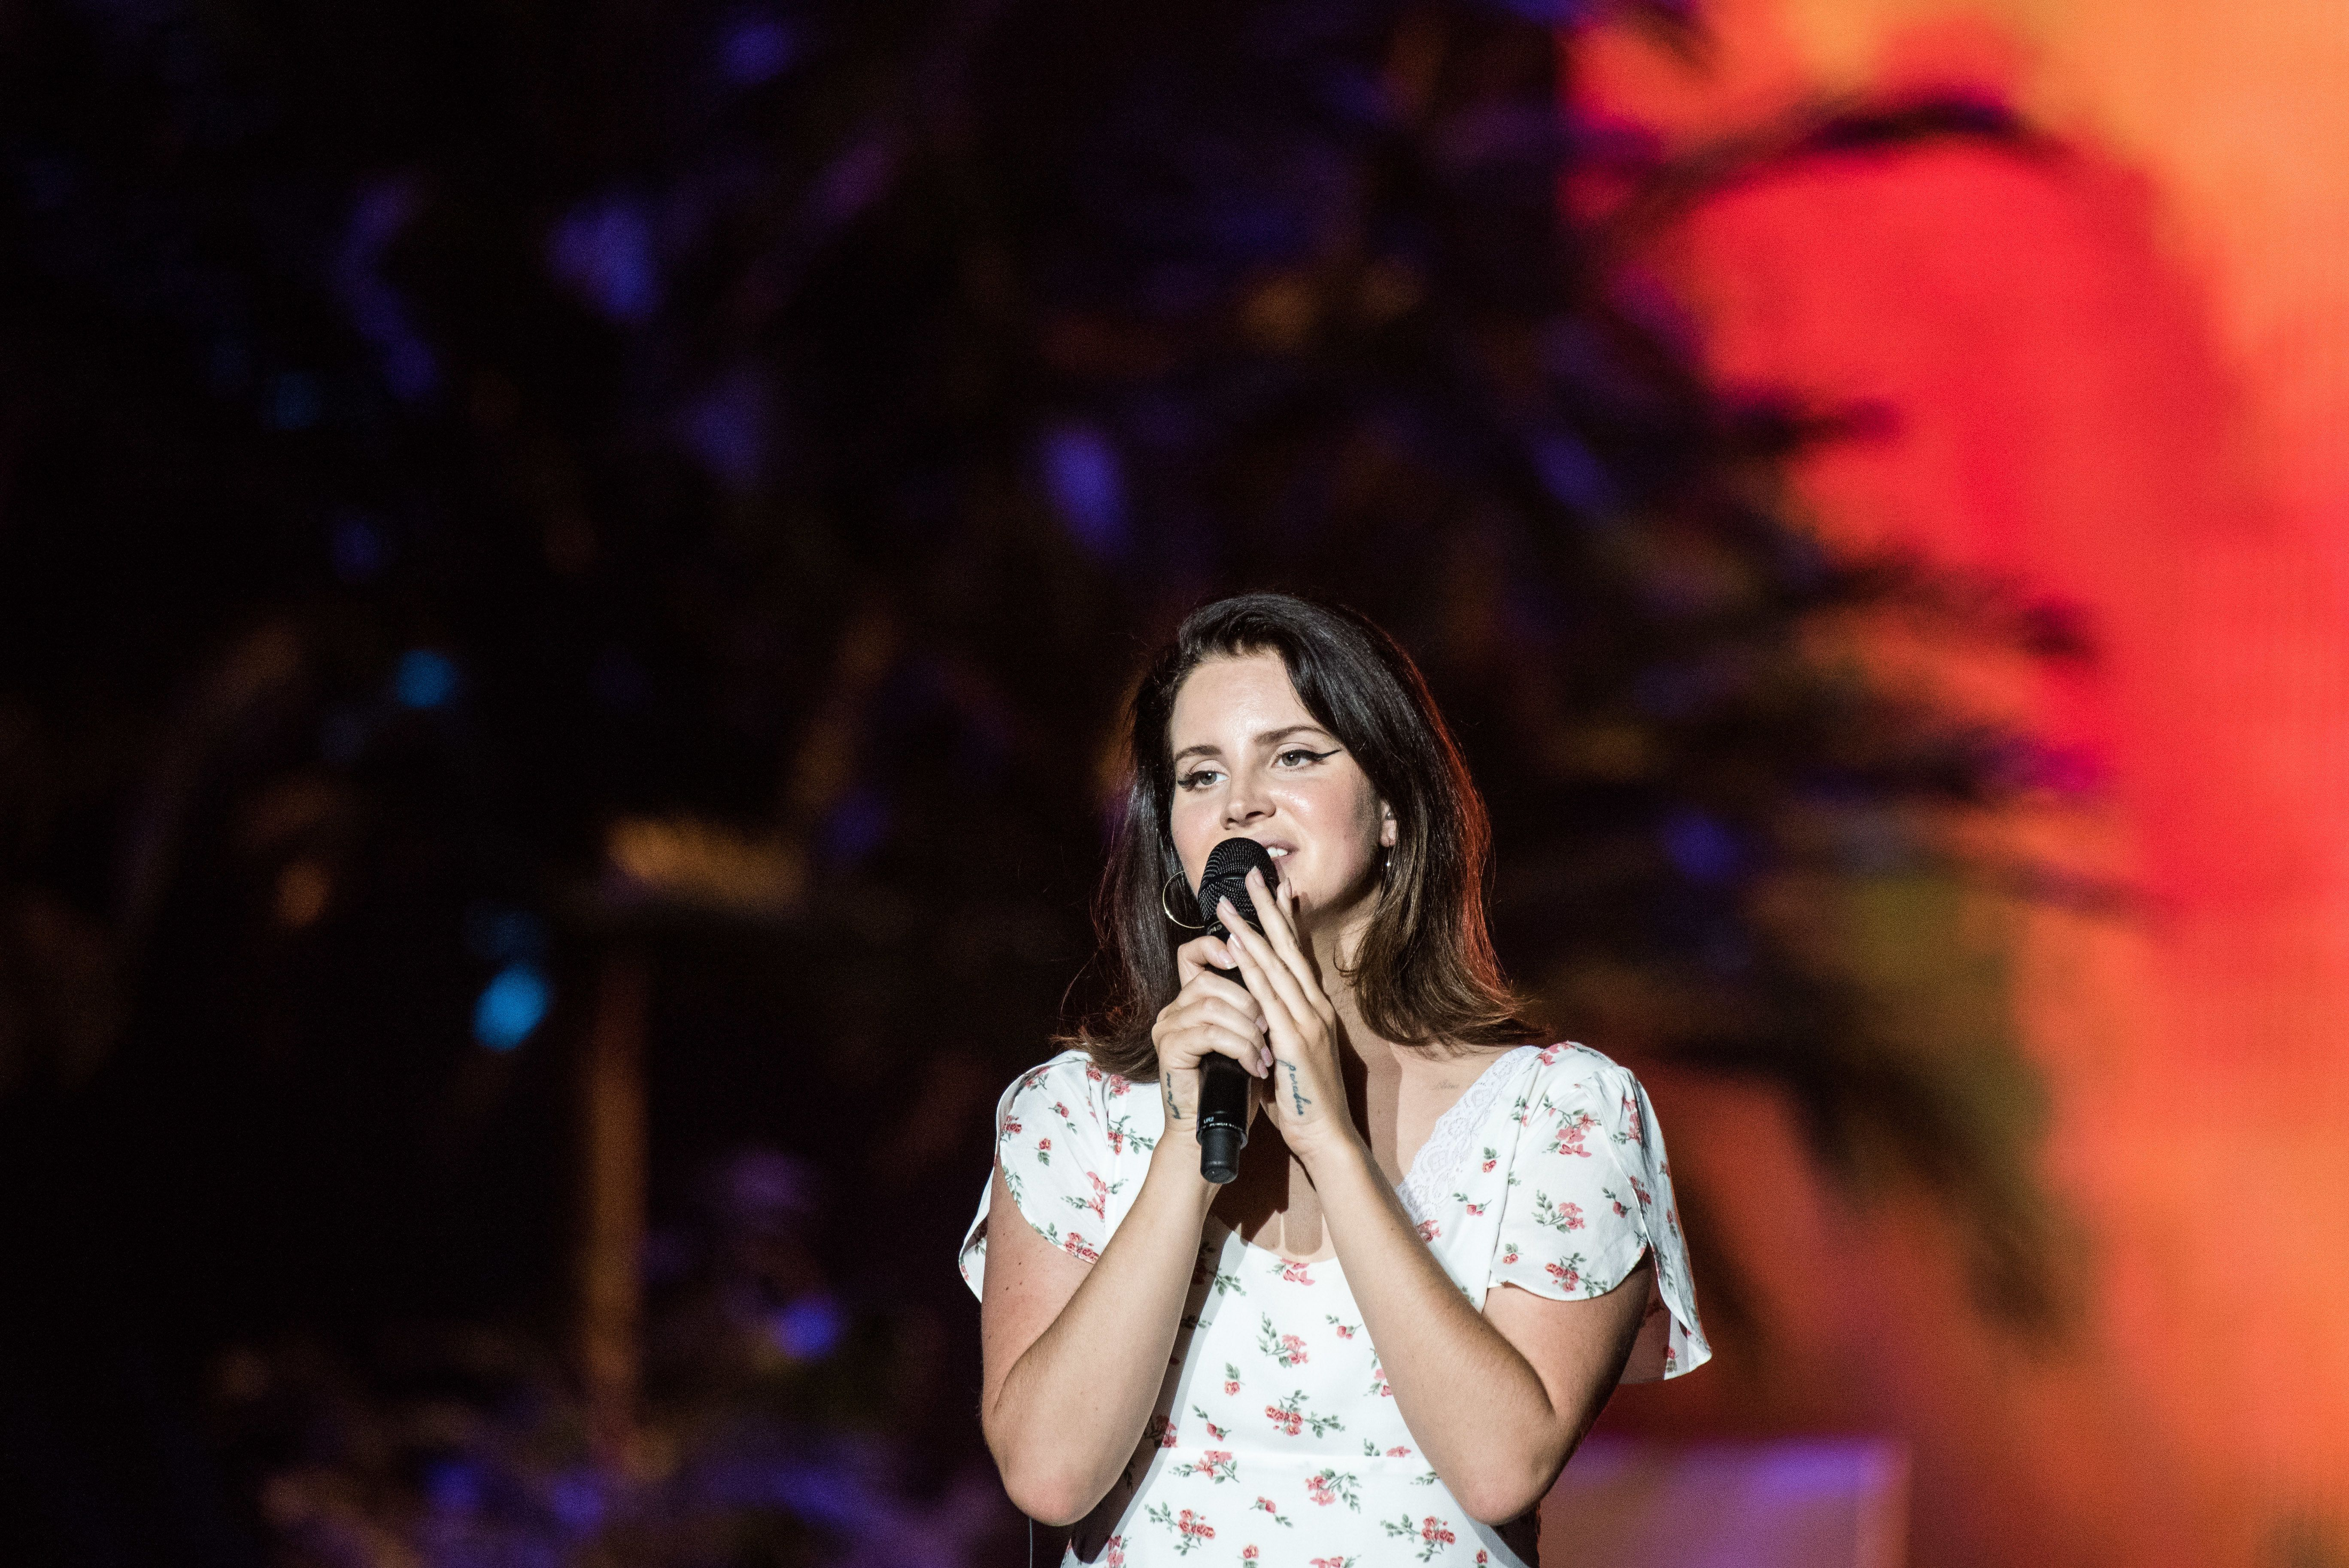 CONTROVERSY: Lana Del Rey Defends Upcoming Israel Show: 'It's Not A Political